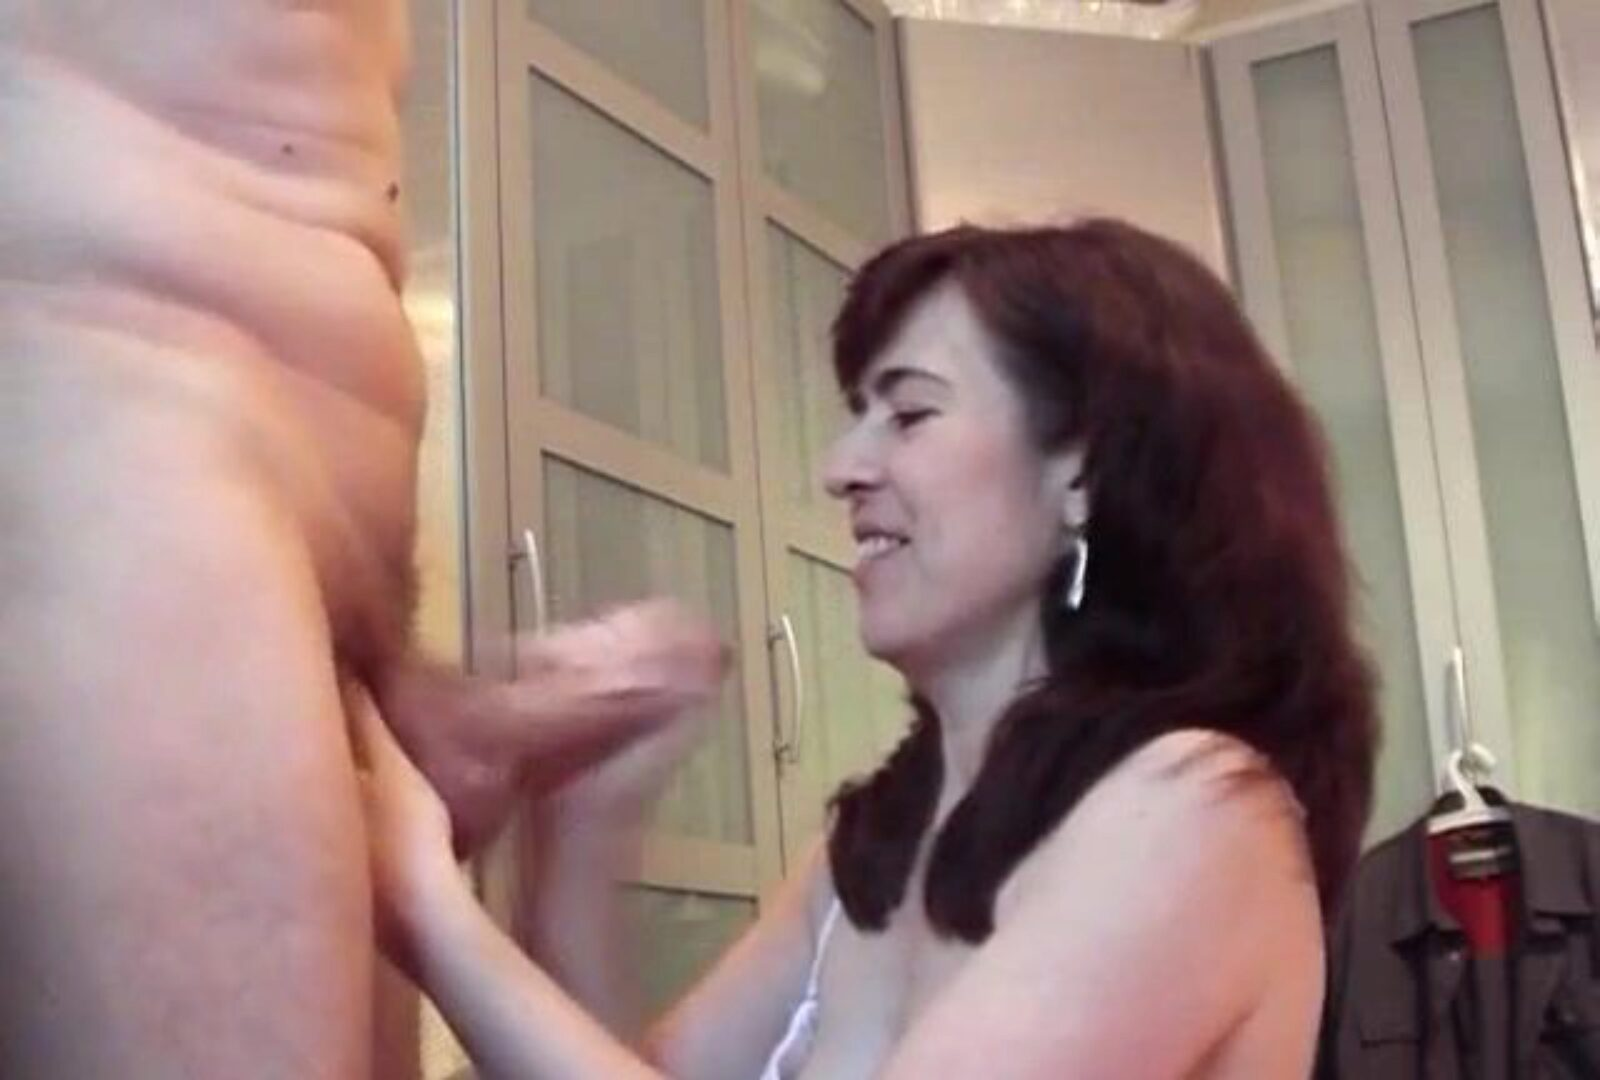 Big schlong shoots a load on aged Jessy's face and face hole Jessy is a german milf with hairy twat and she can't live without  blowjobs with large cocks and large loads in her mouth and face.